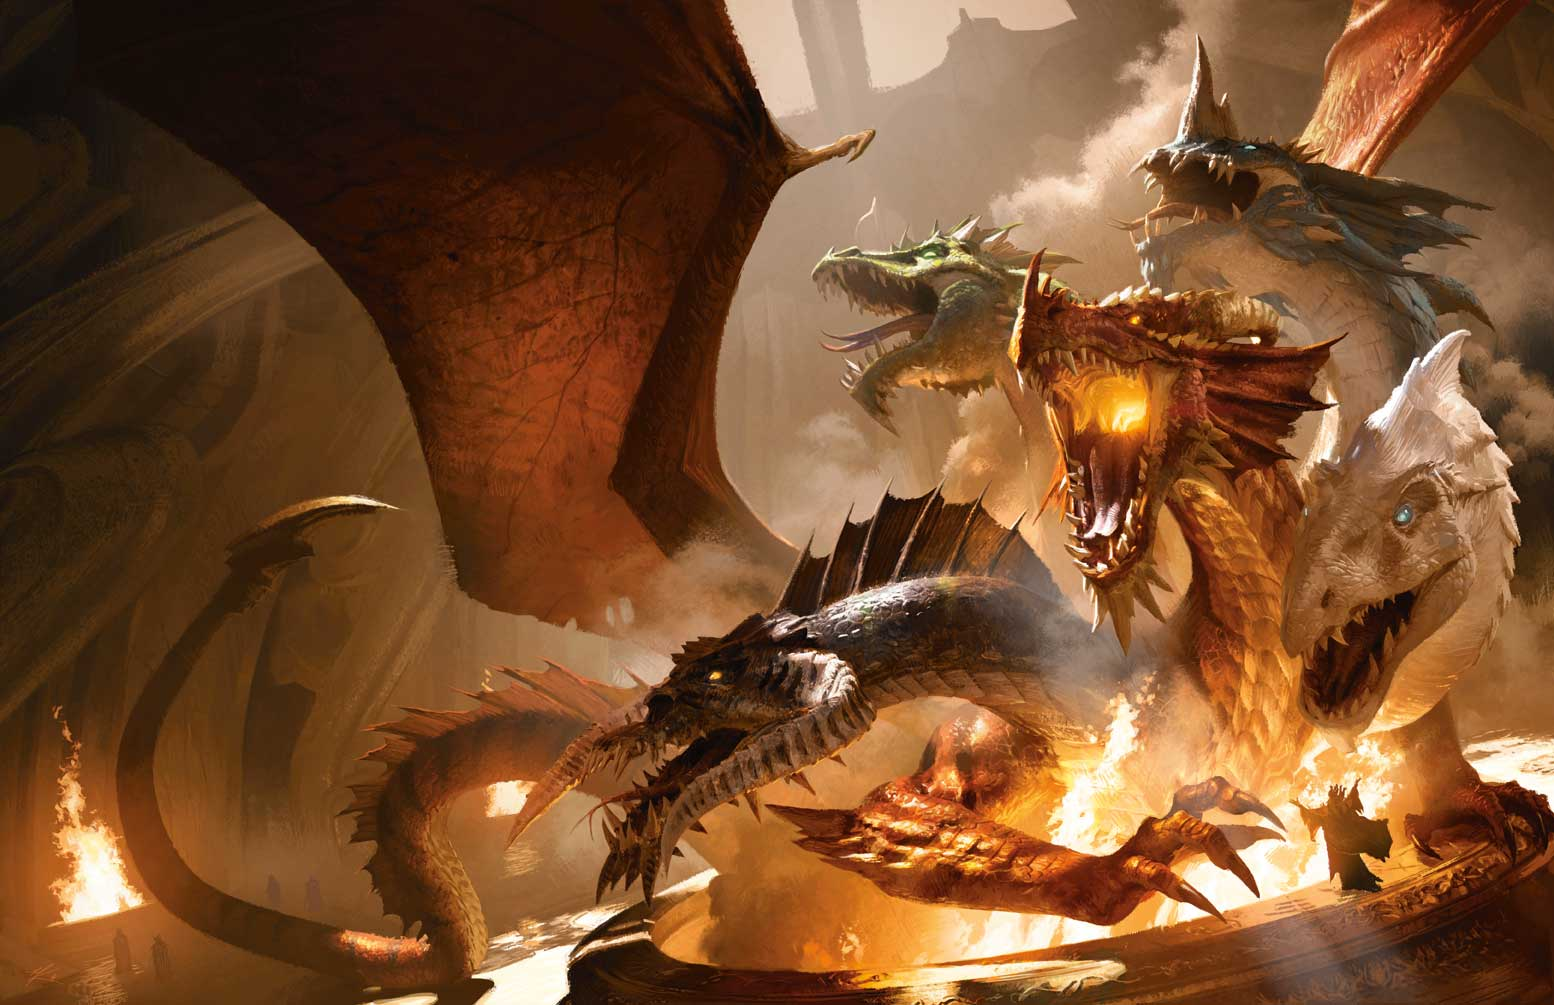 WotC: 3 classic D&D settings in the works for next 2 years